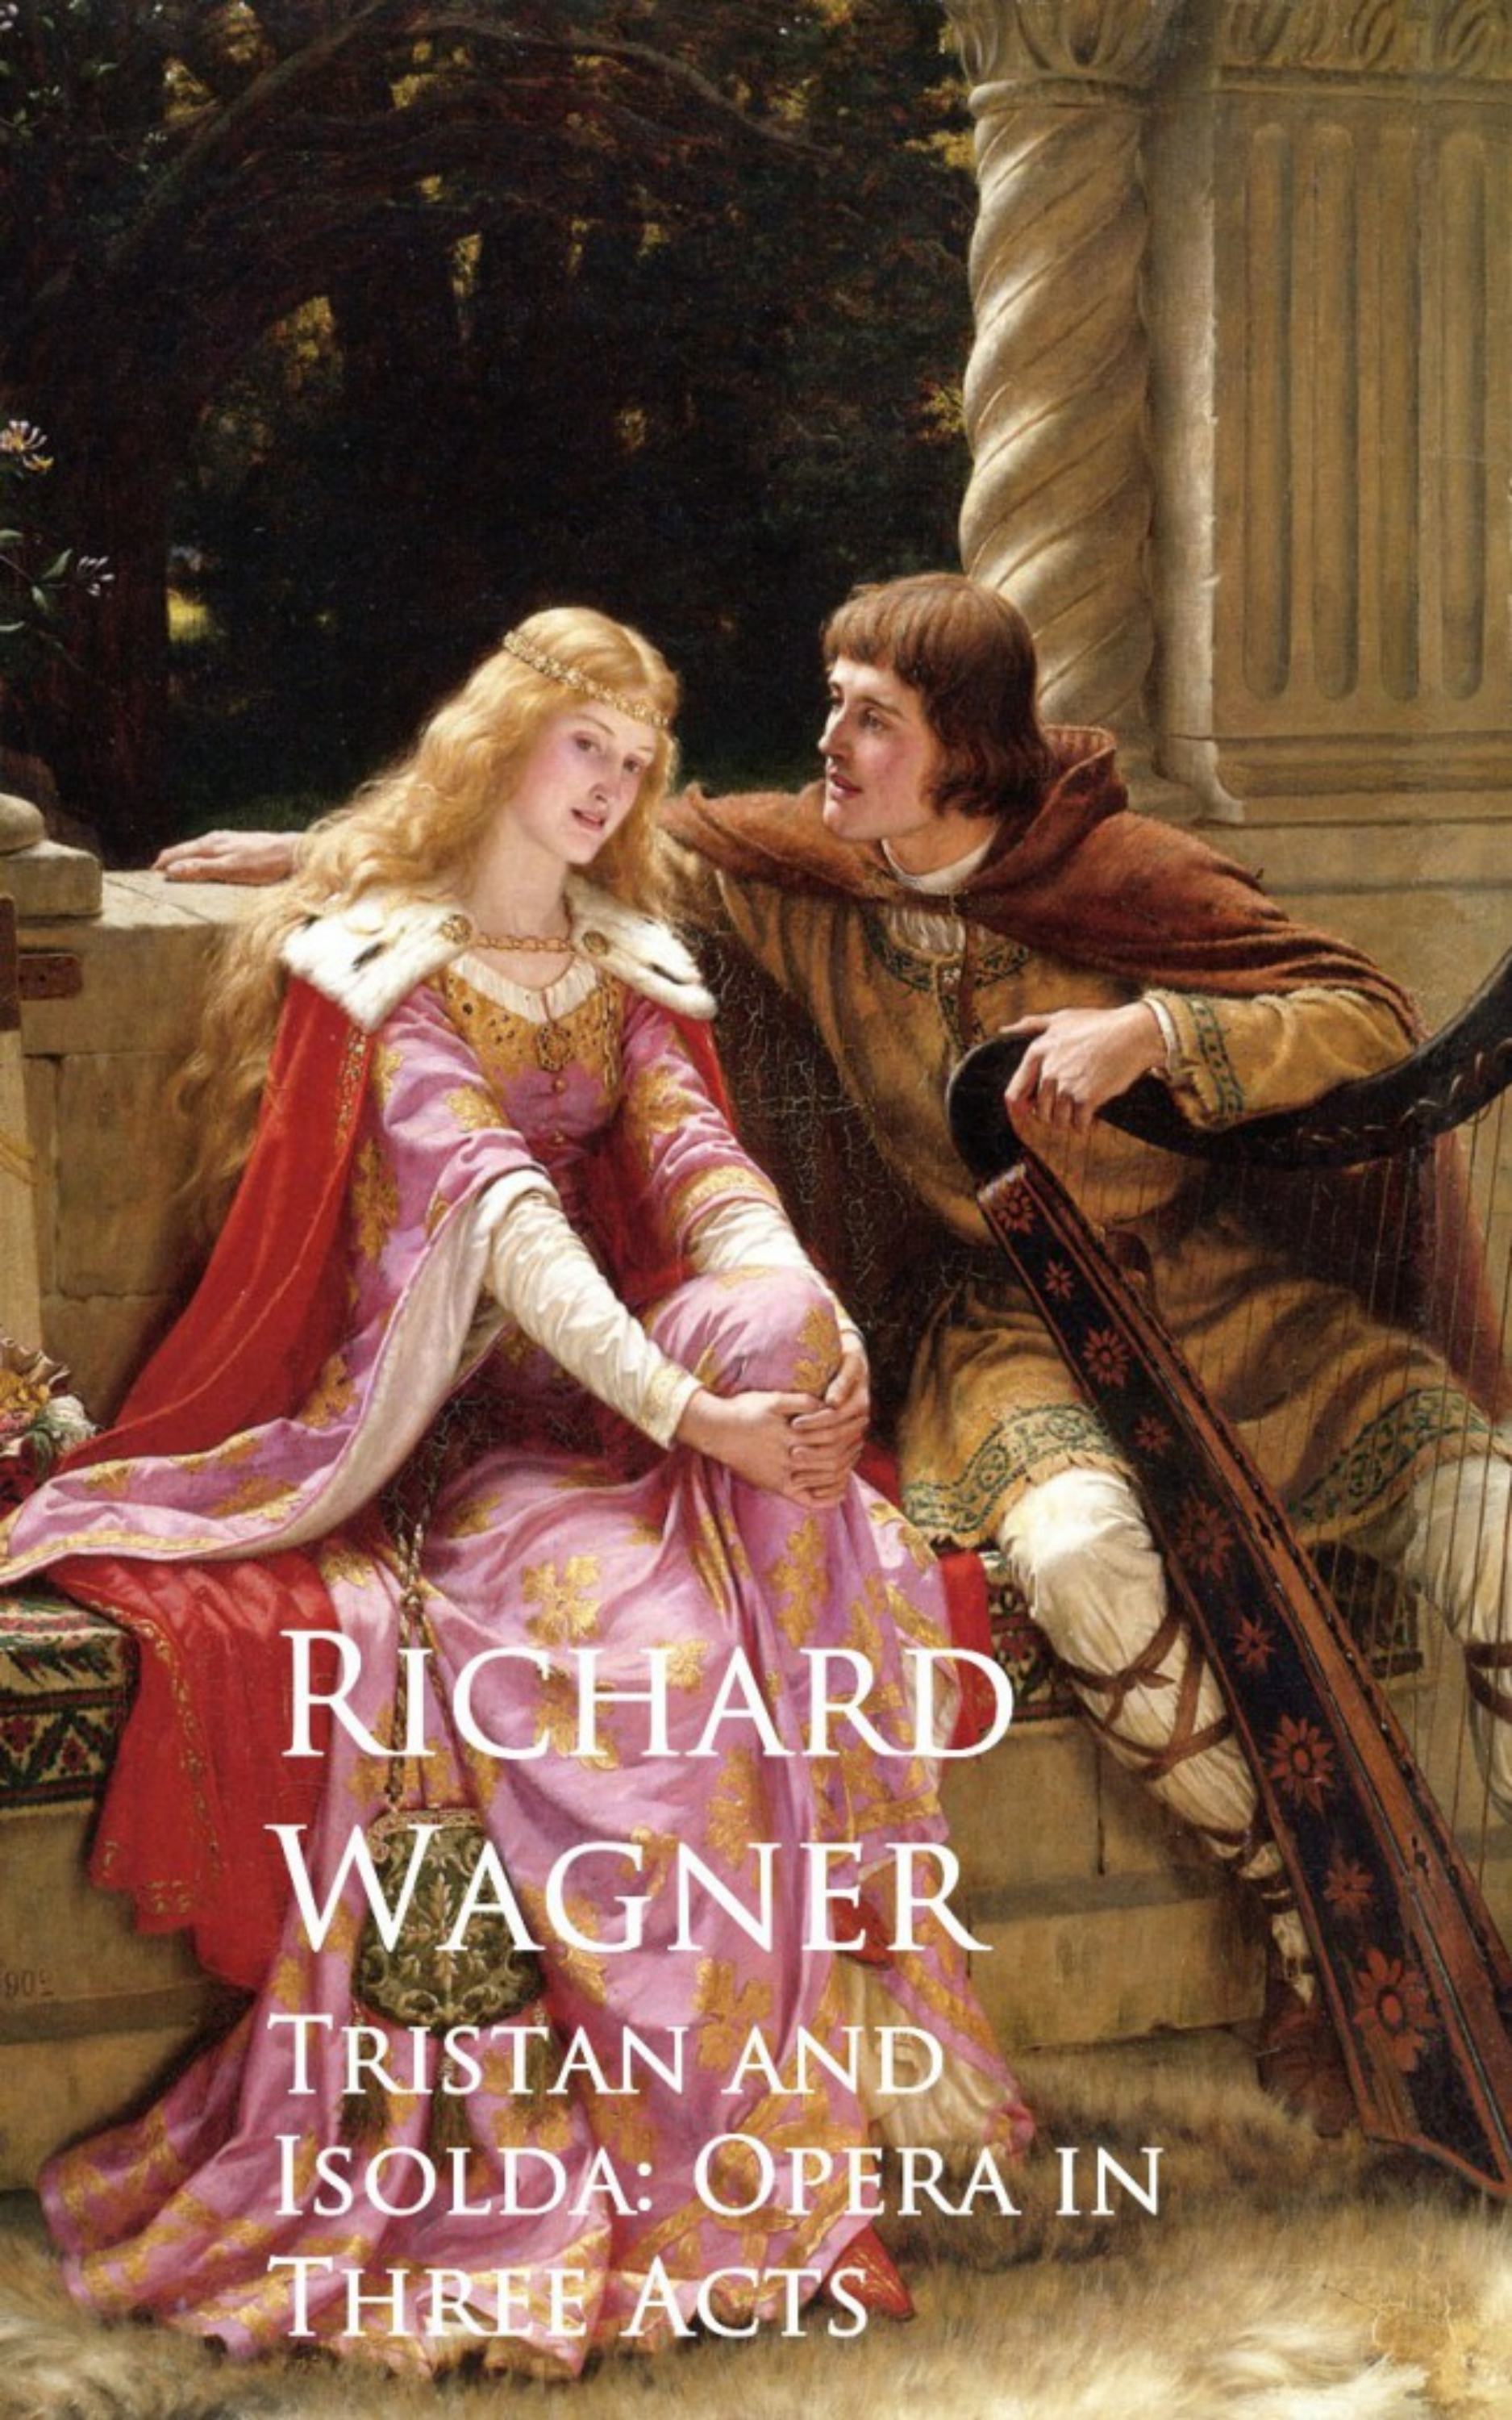 Richard Wagner Tristan and Isolda: Opera in Three Acts richard wagner richard mansfield xml all in one desk reference for dummies